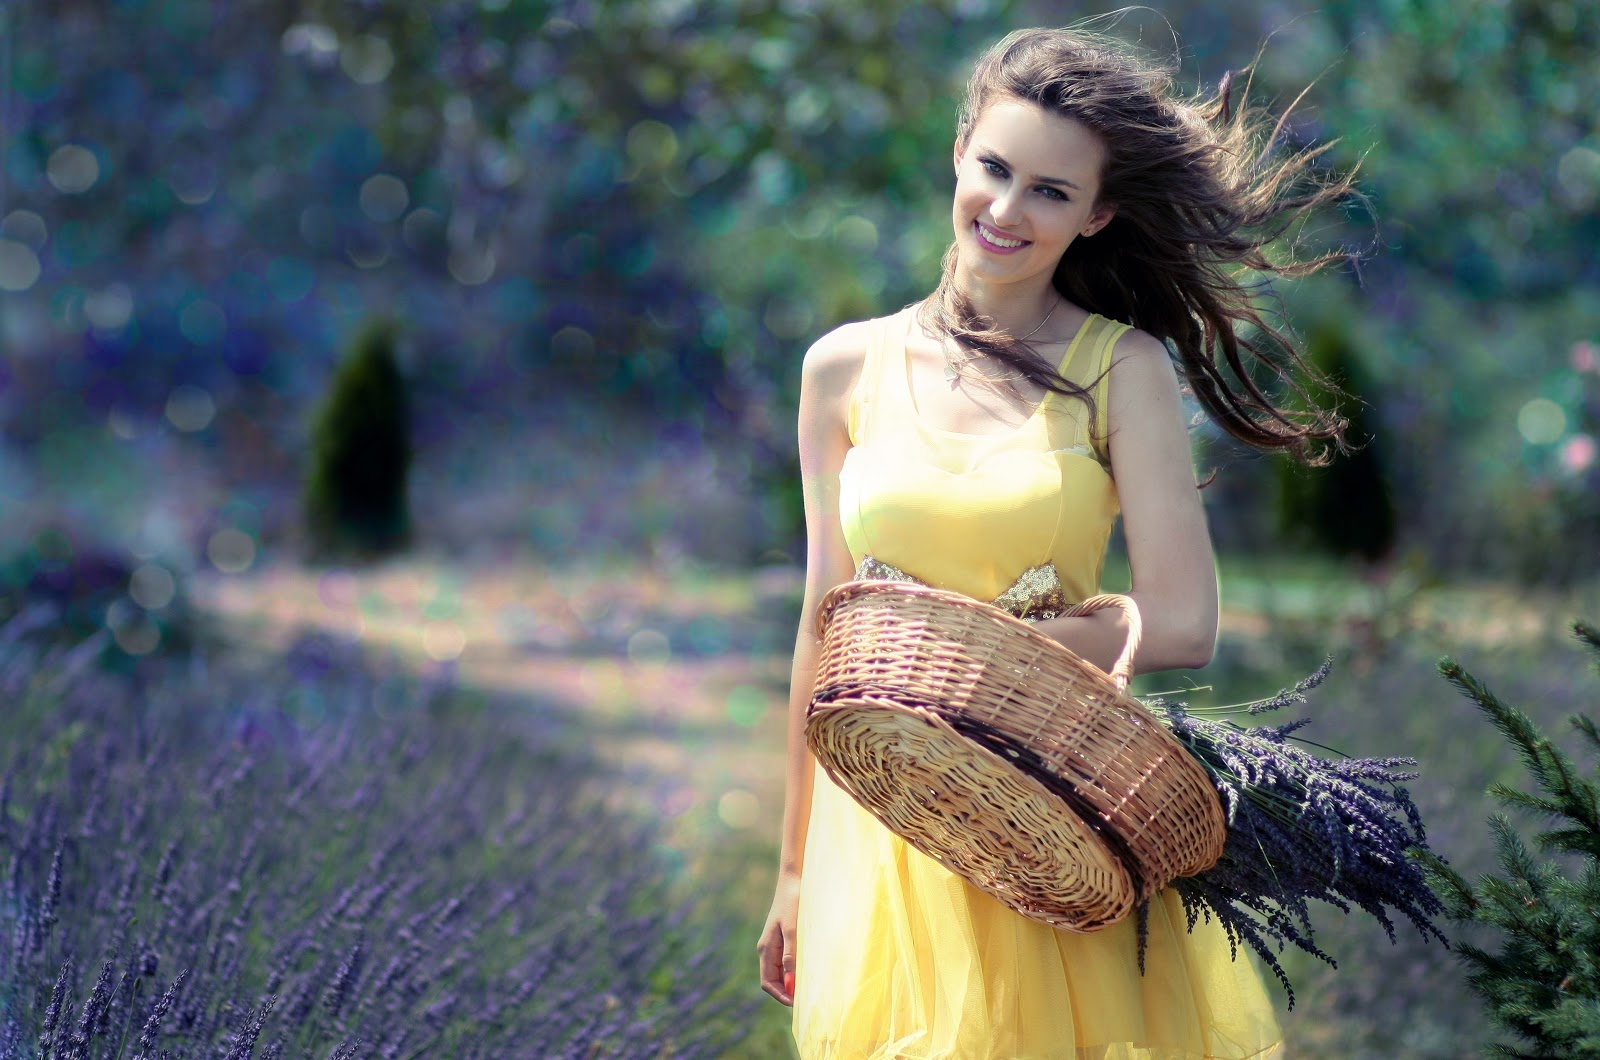 Date Night Dress girl in yellow dress with basket